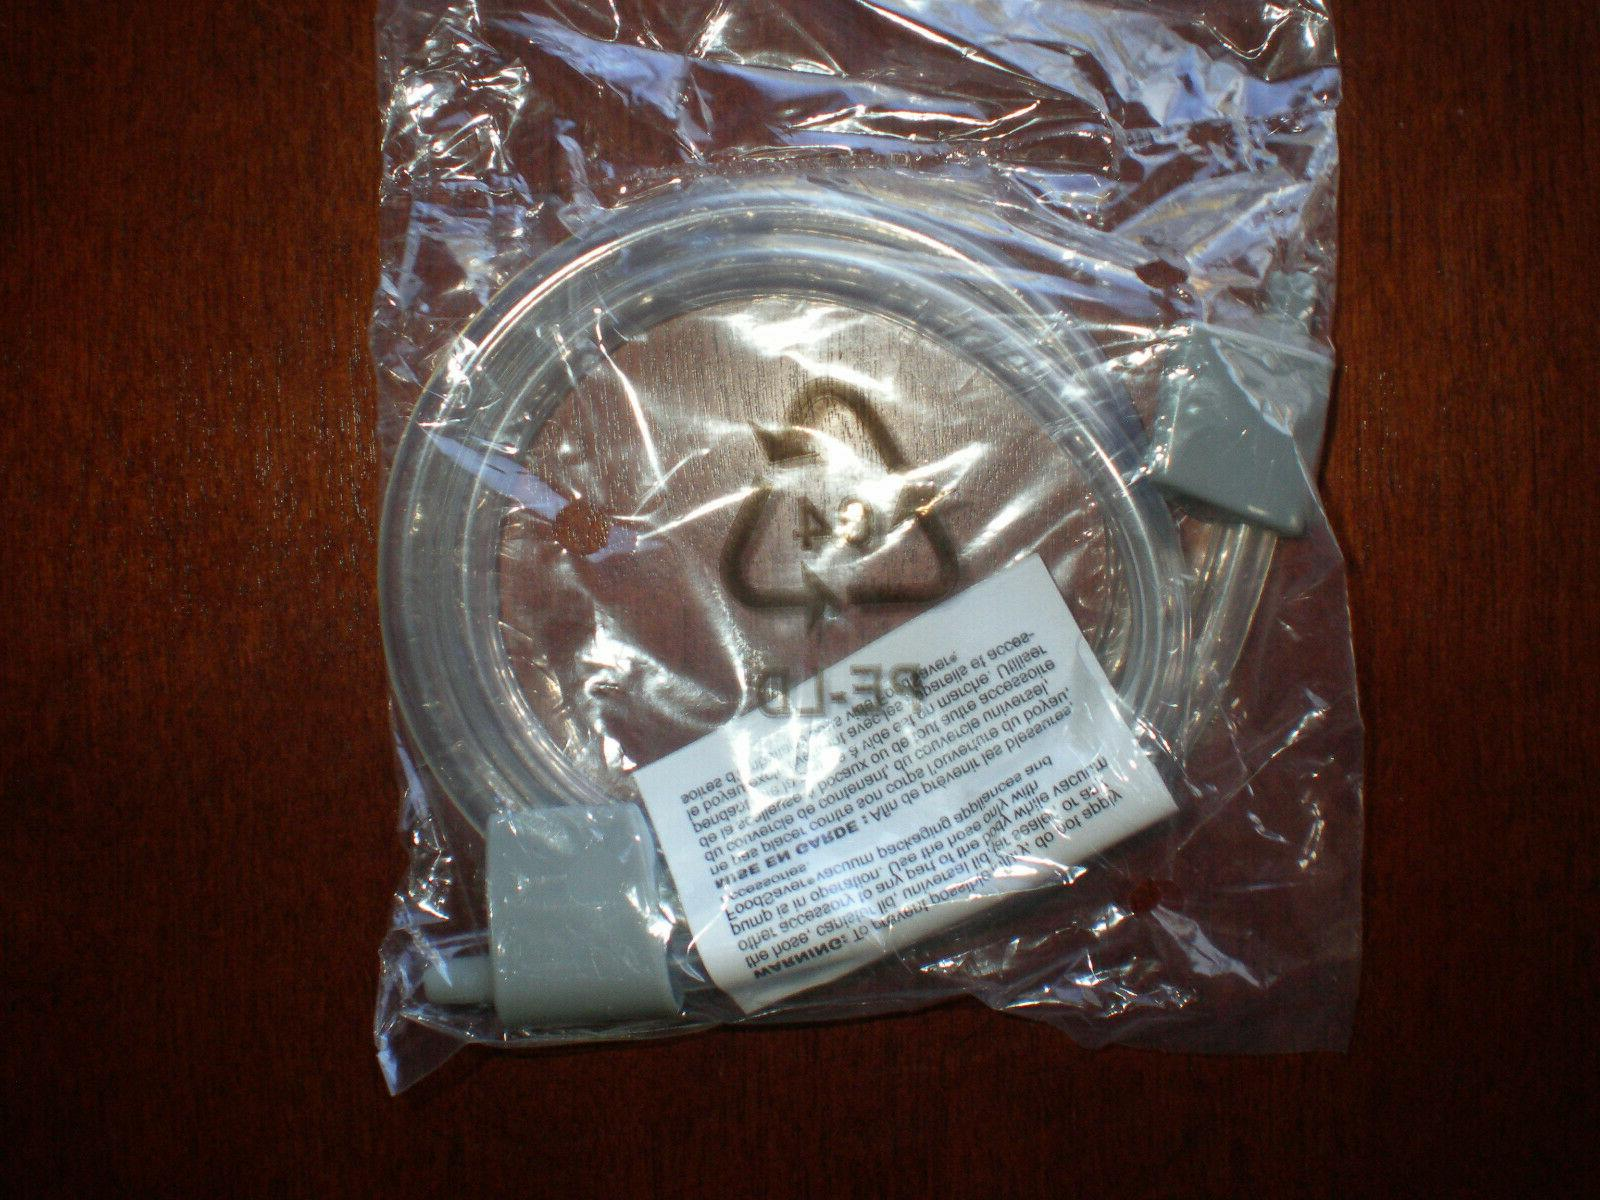 nip replacement 26 suction hose for vacuum